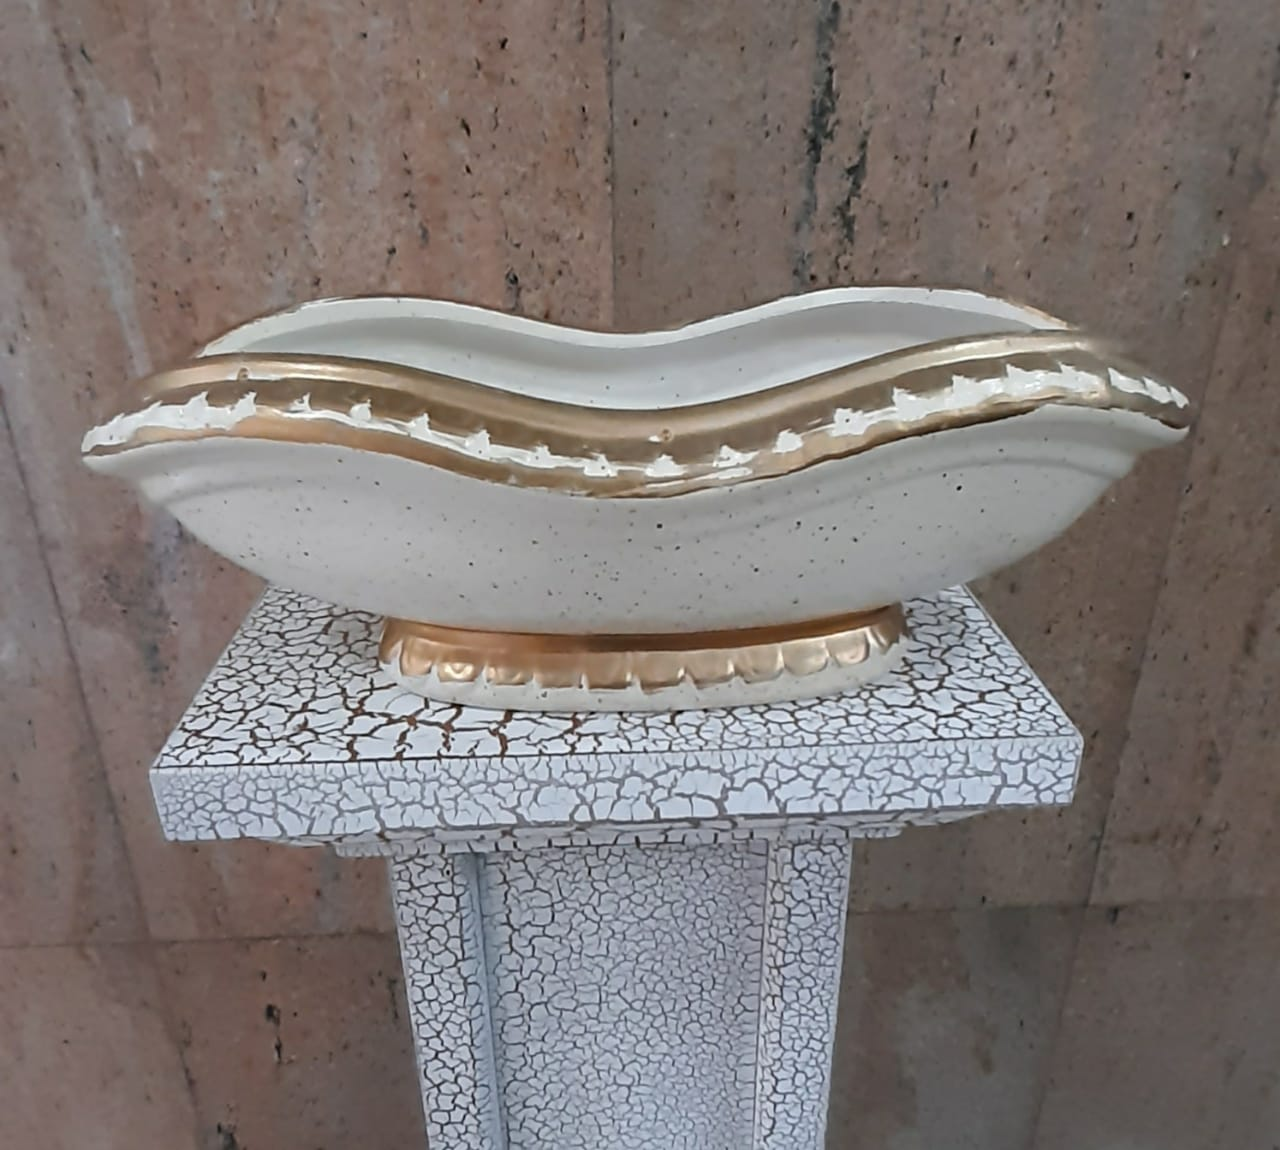 10cm Ceramic White/Gold Base (35cm length) - Green Gardens Mihiliya (Pvt) Ltd